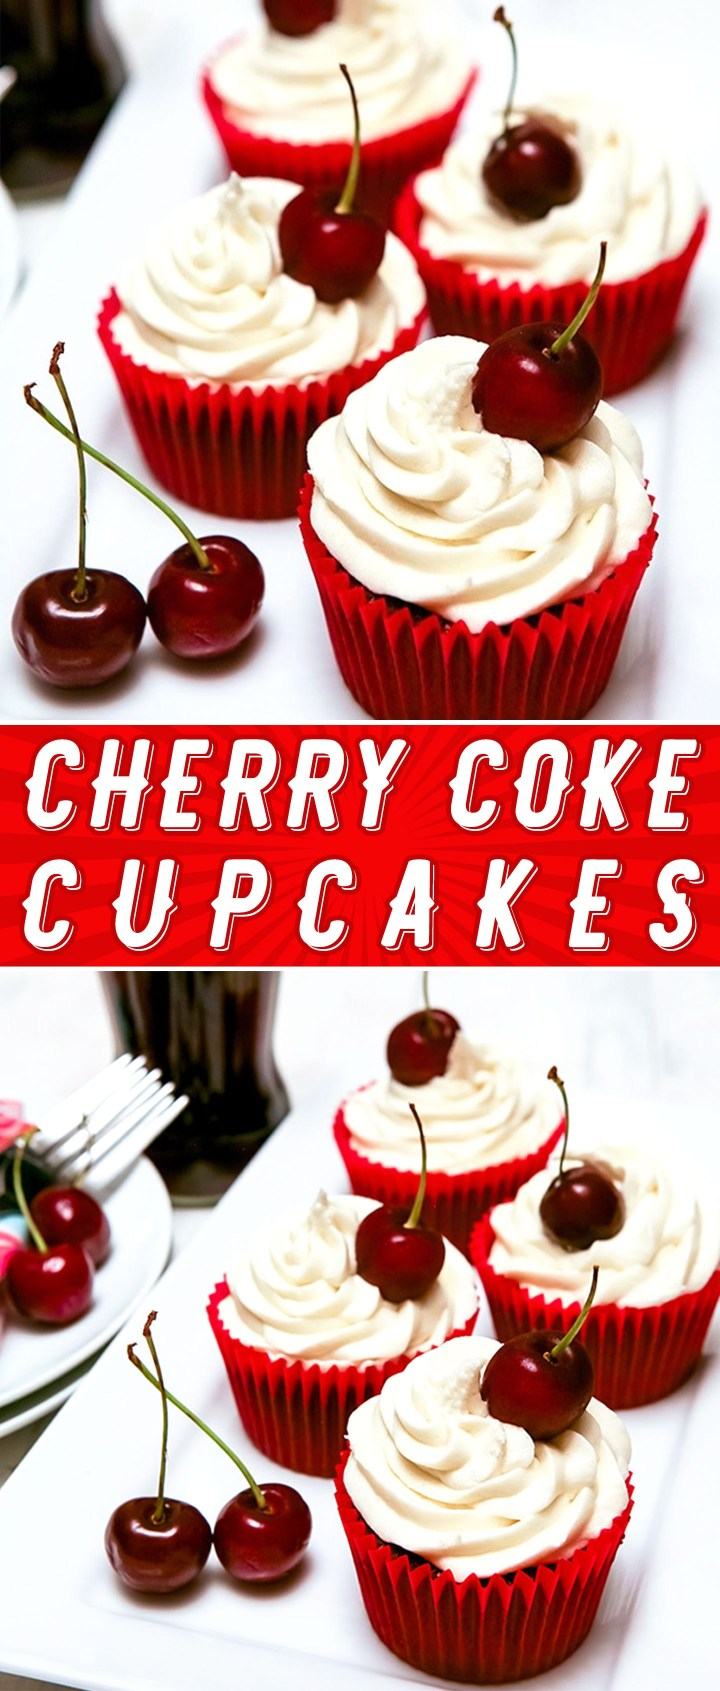 Cherry Coke Cupcakes Recipe by Sweet2EatBaking.com | These Cherry Coke cupcakes have cherry coke in the batter, making for a super moist flavourful cupcake. You can really taste the Cherry Coke flavour in these cupcakes.